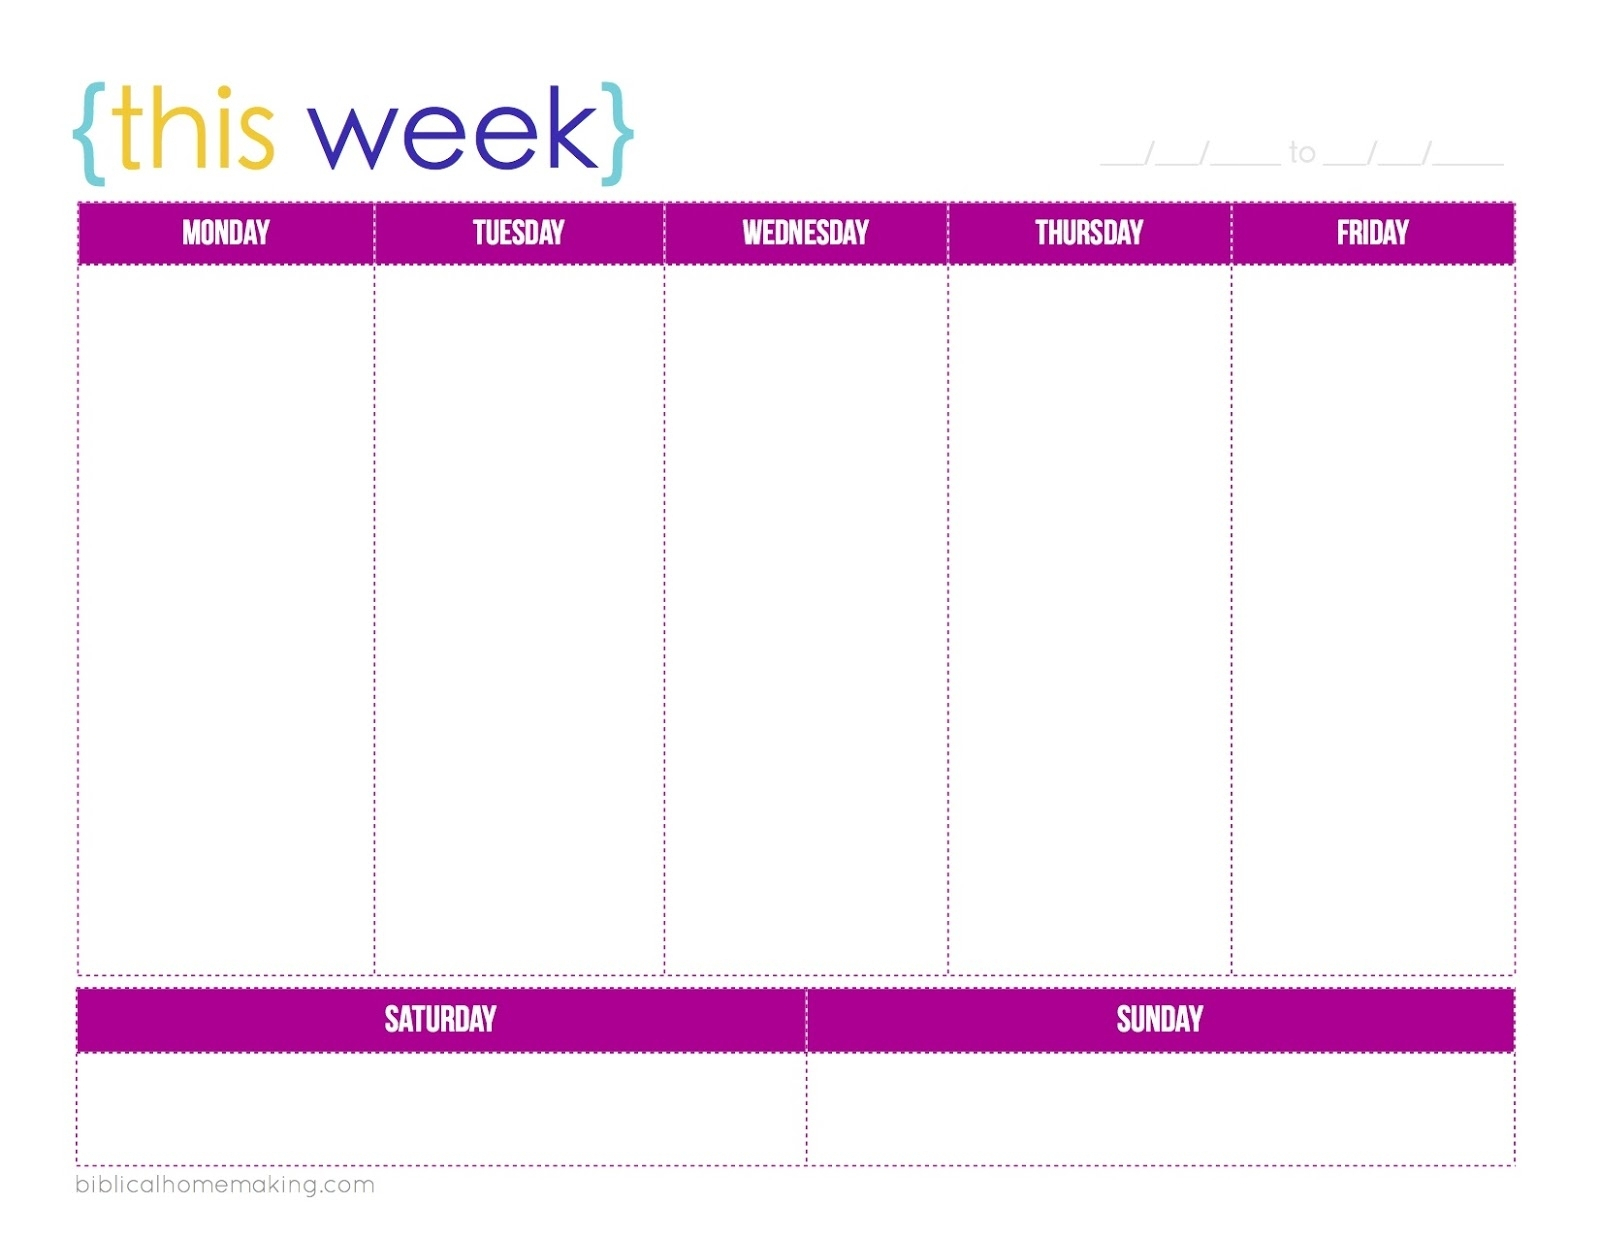 Free Printable 1 Week Calendar | Ten Free Printable